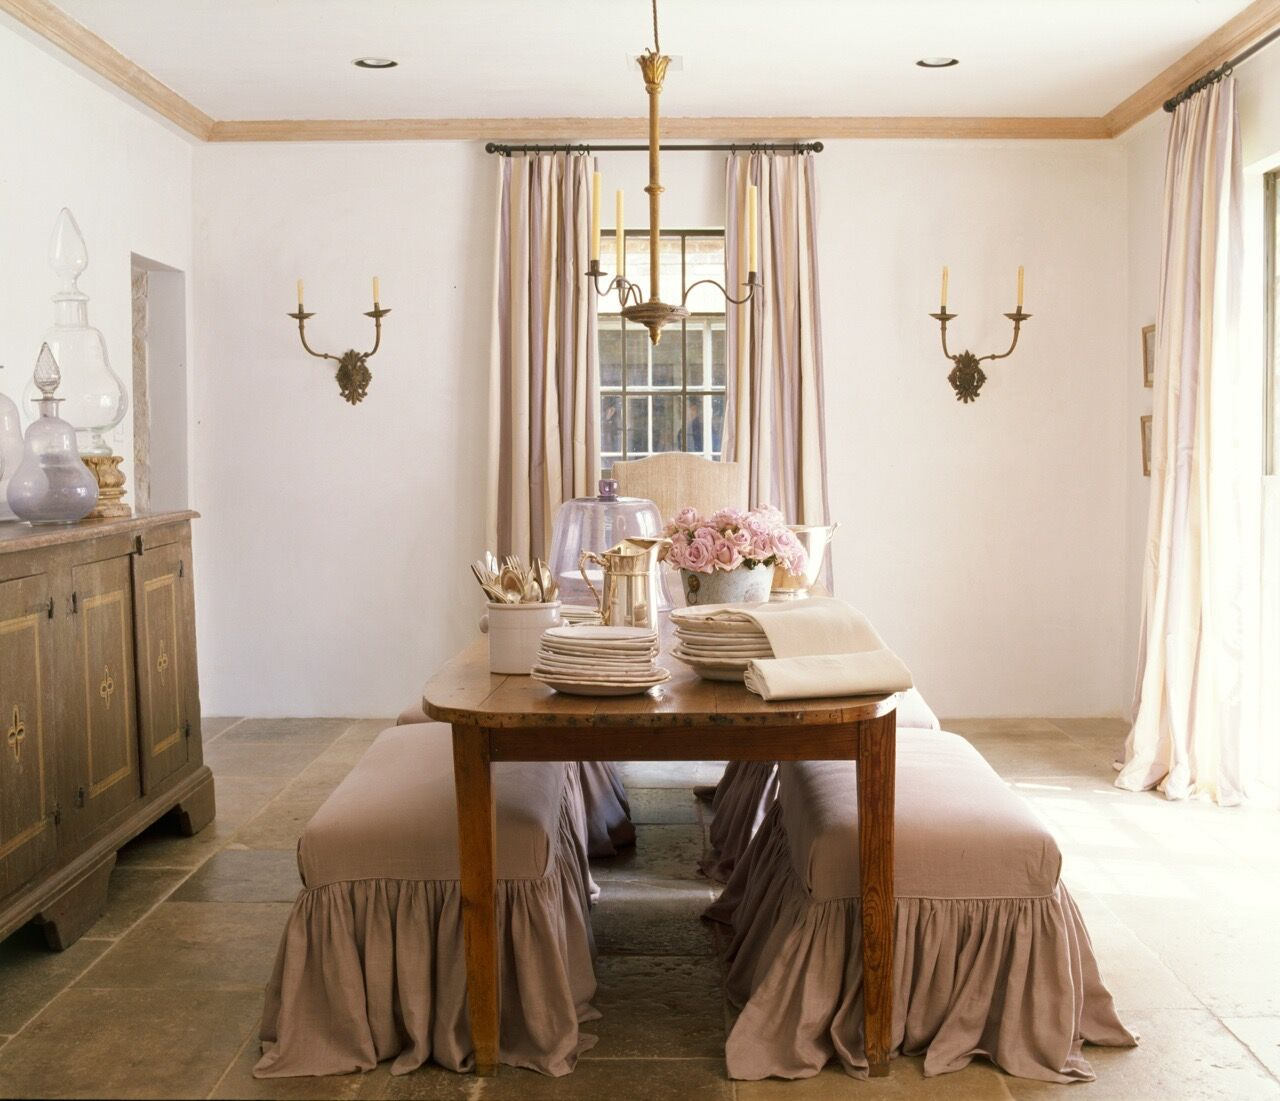 Chateau Domingue Timeless European Elegance and French farmhouse style converge in this house tour of founder Ruth Gay's home on Hello Lovely. Reclaimed stone, antique doors and mantels, and one of a kind architectural elements. #housetour #frenchcountry #frenchfarmhouse #europeanfarmhouse #chateaudomingue #rusticdecor #pamelapierce #elegantdecor #diningroom #romantic